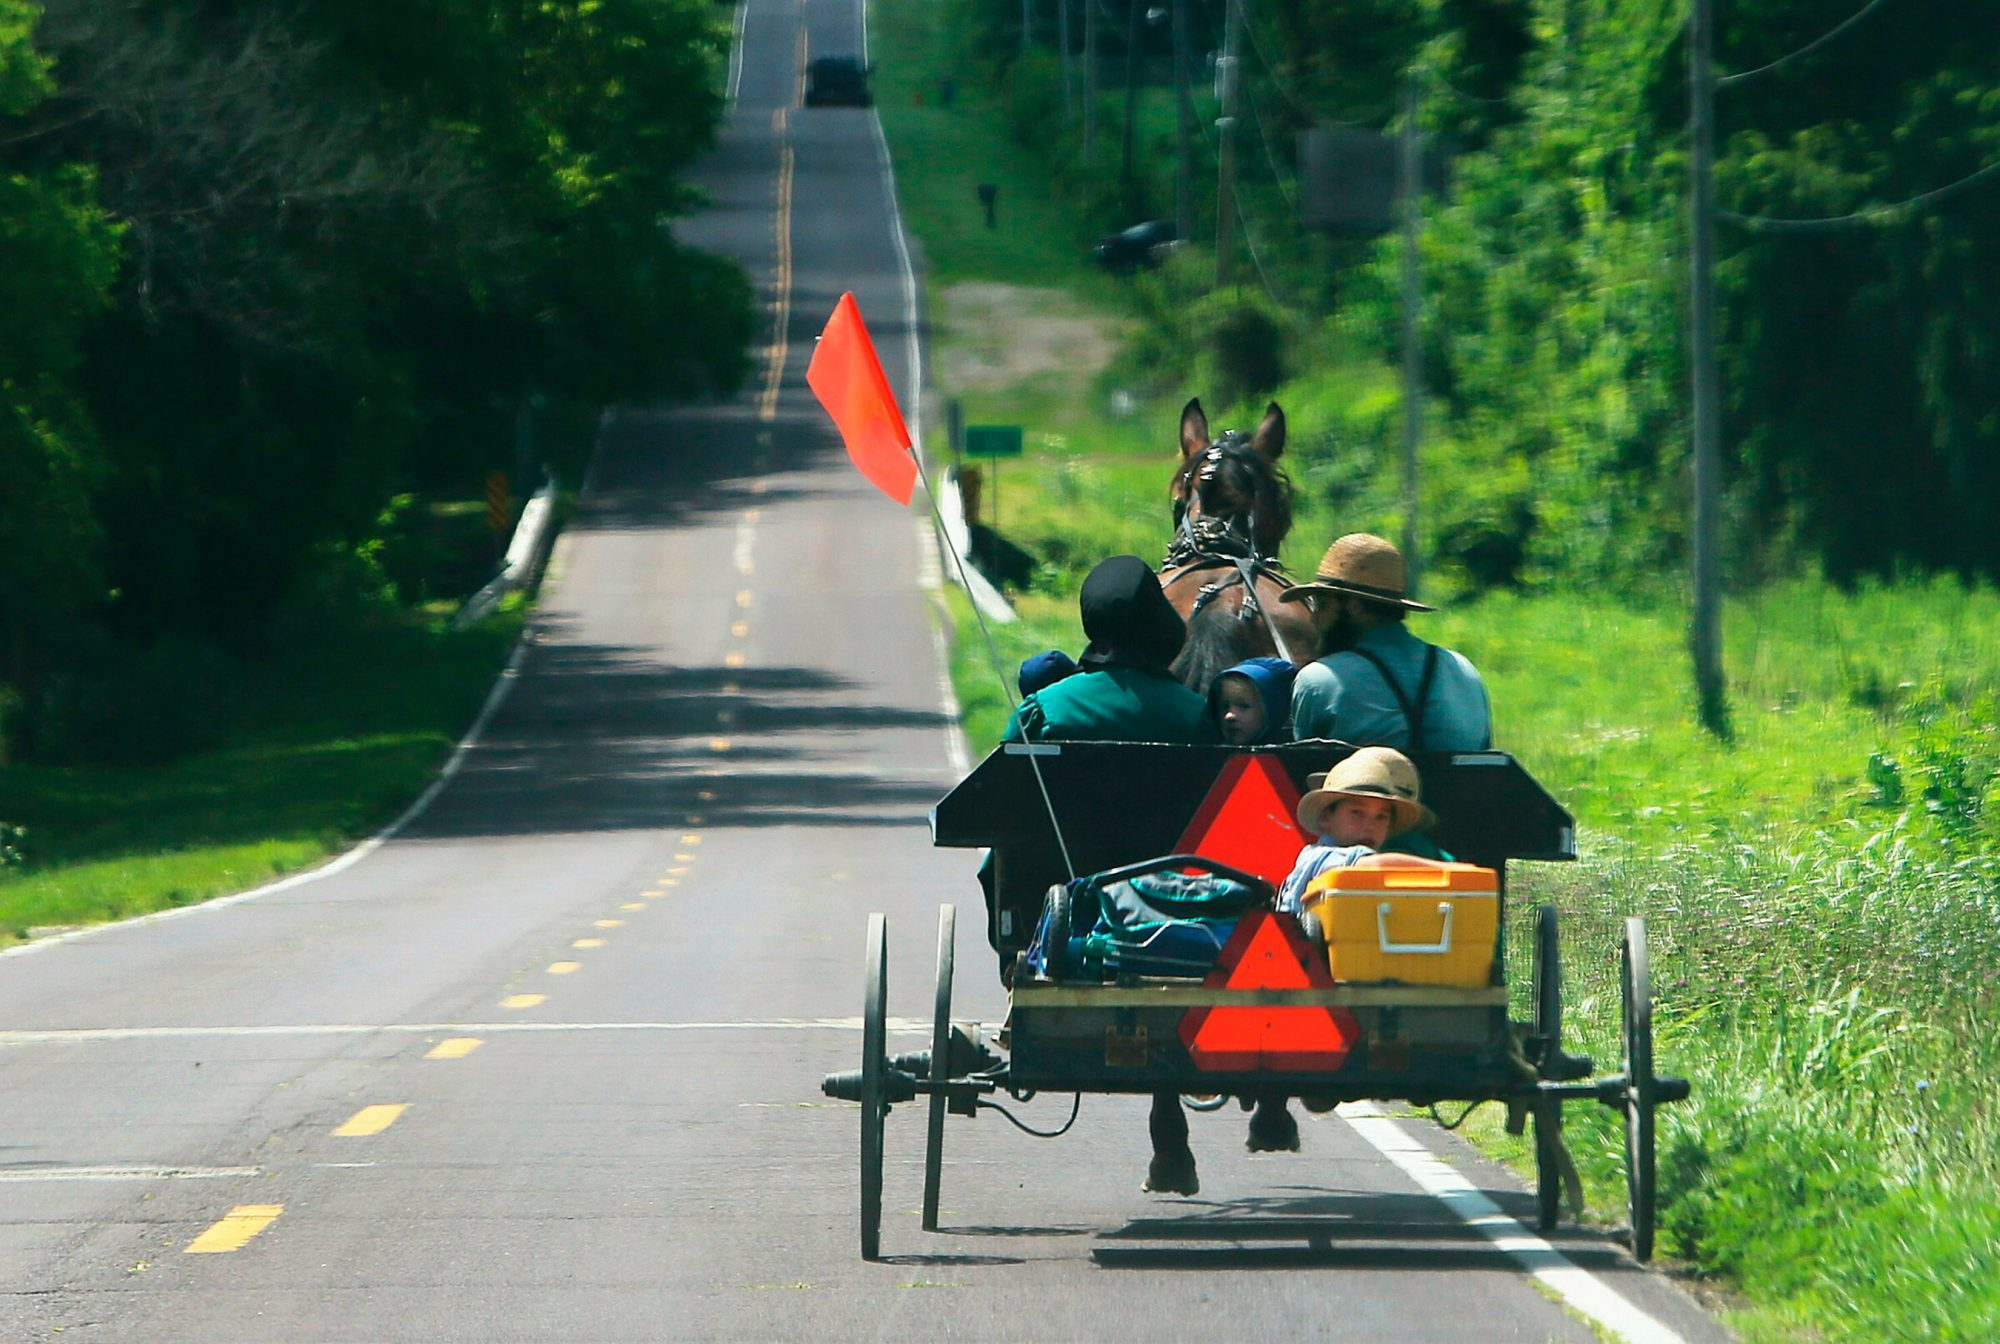 A buggy with six people goes southbound past the spot on Highway OO where a buggy accident occurred on Thursday, July 11, 2019, in St. Francois County south of Farmington, Mo. A buggy going northbound was struck by a pickup truck just south of the Liberty Blueberry Farms. An eight-year-old boy was killed in the accident and four people were seriously injured. (J.B. Forbes/St. Louis Post-Dispatch via AP)